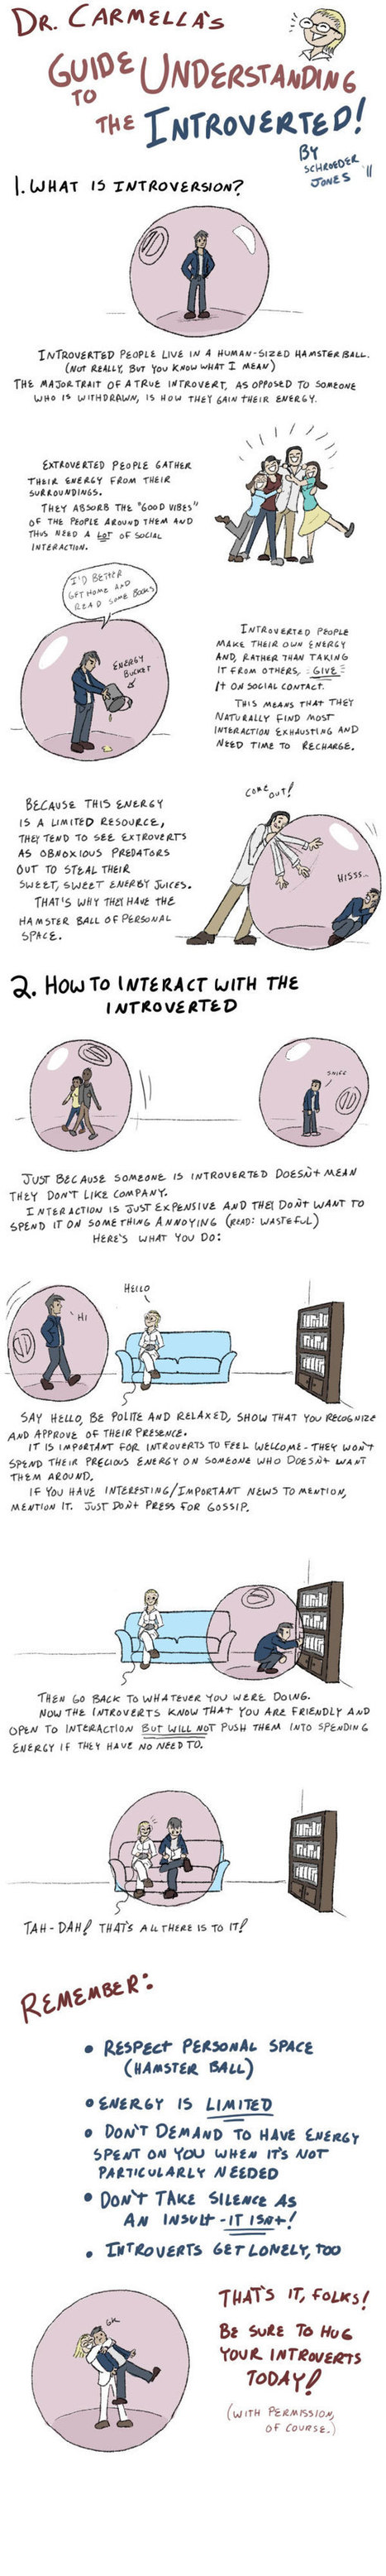 How to Live with Introverts | People Data, Infographics & Sweet Stats | Scoop.it